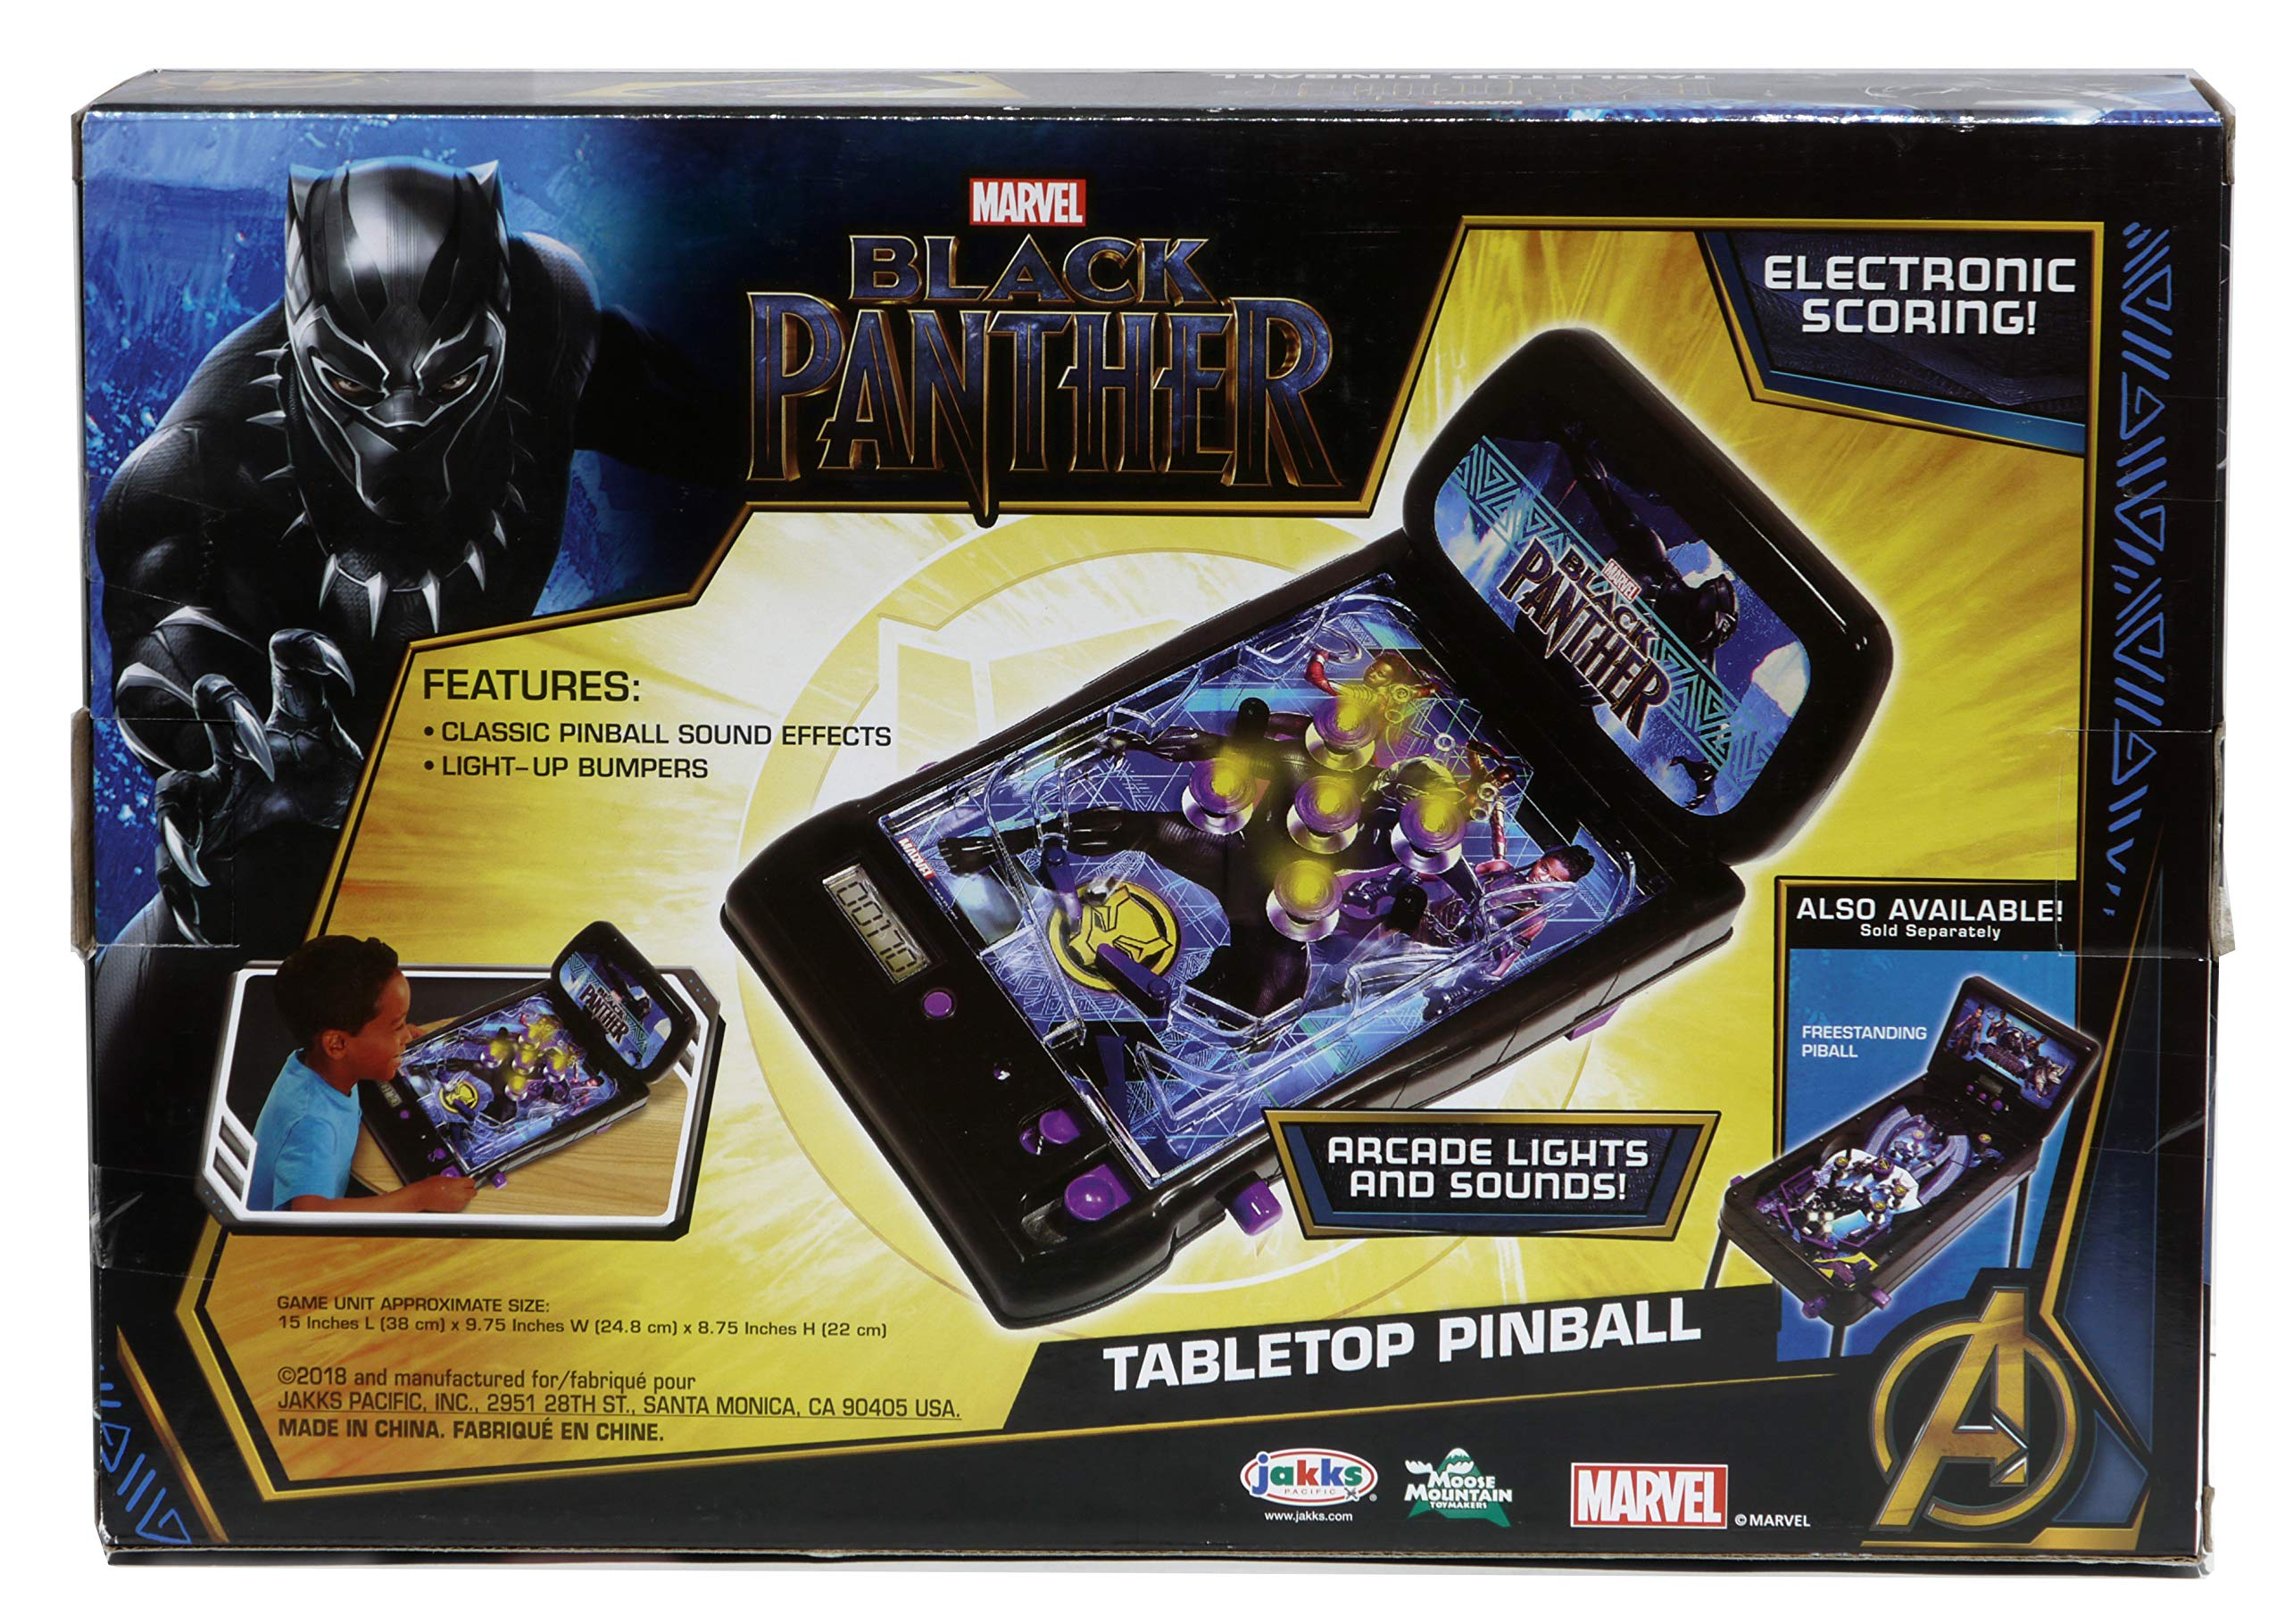 Black Panther Electronic Tabletop Pinball Machine by Marvel